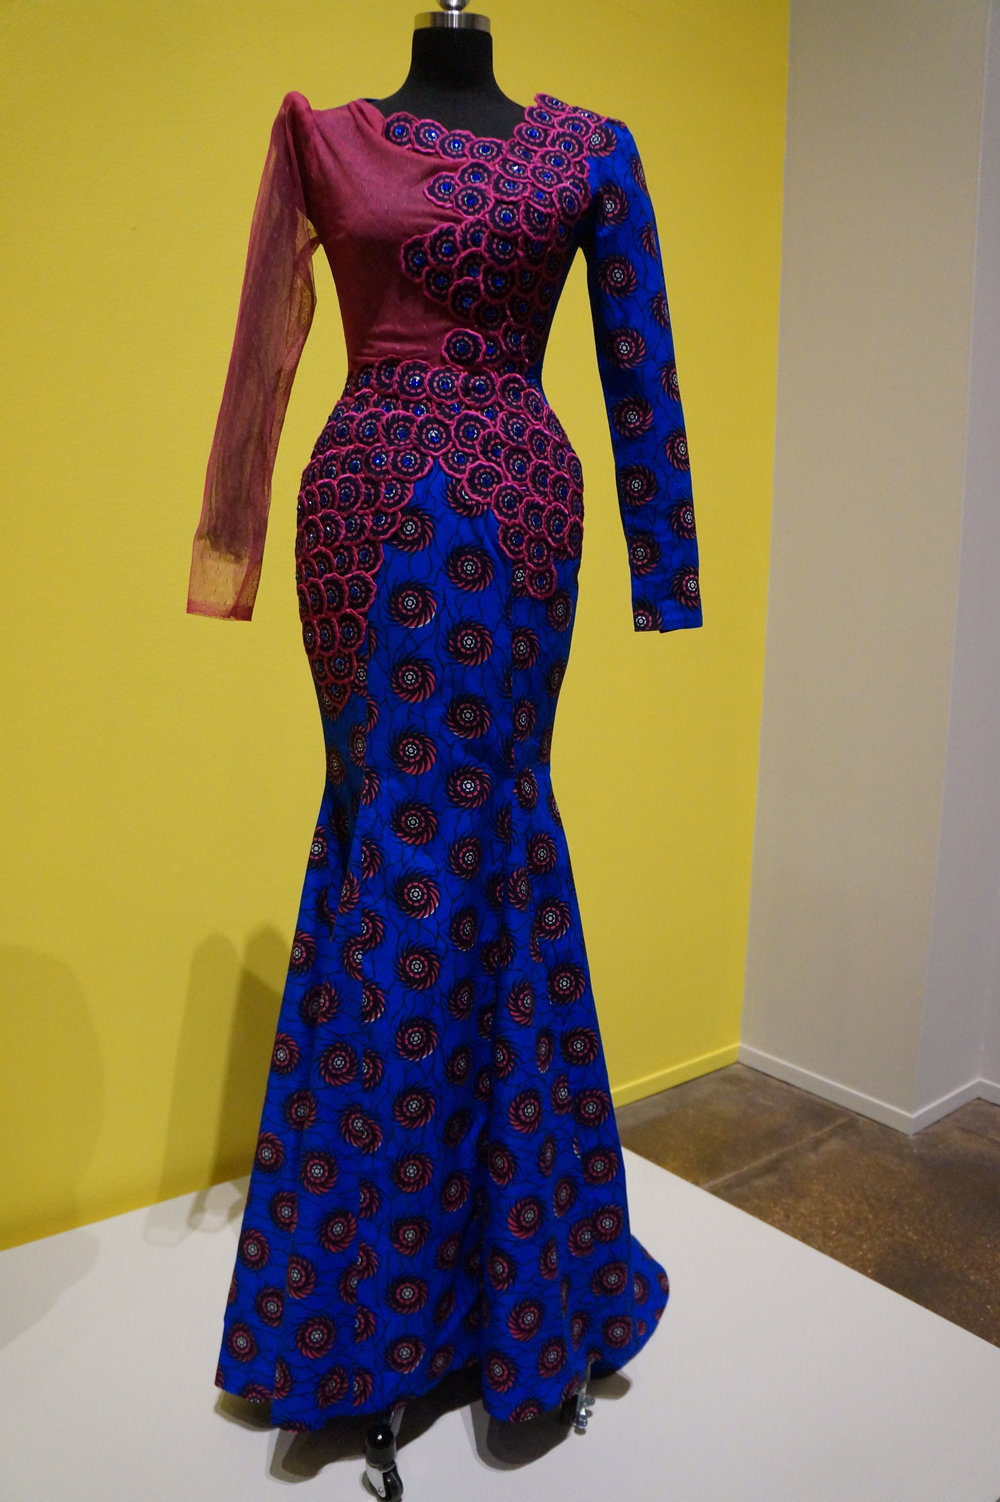 Andrea Fenise Memphis Fashion Blogger shares African Print Fashion Now Exhibit